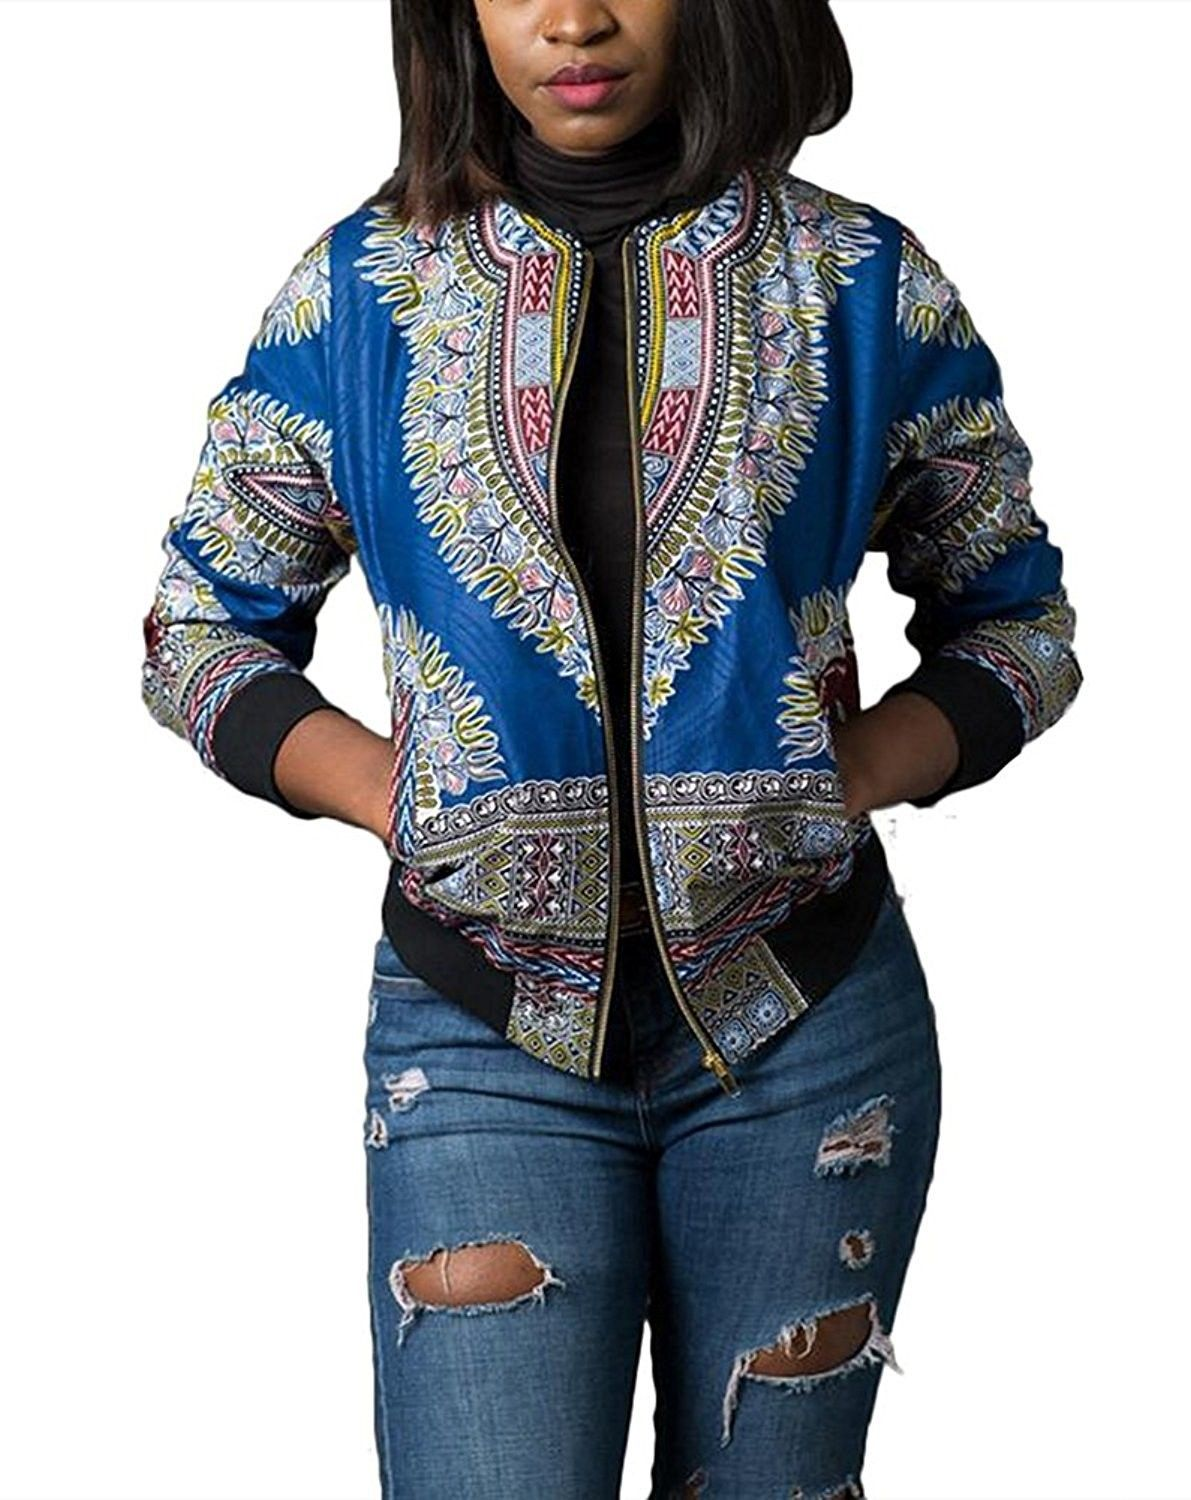 Women's African Tribal Print Short Dashiki Bomber Jacket